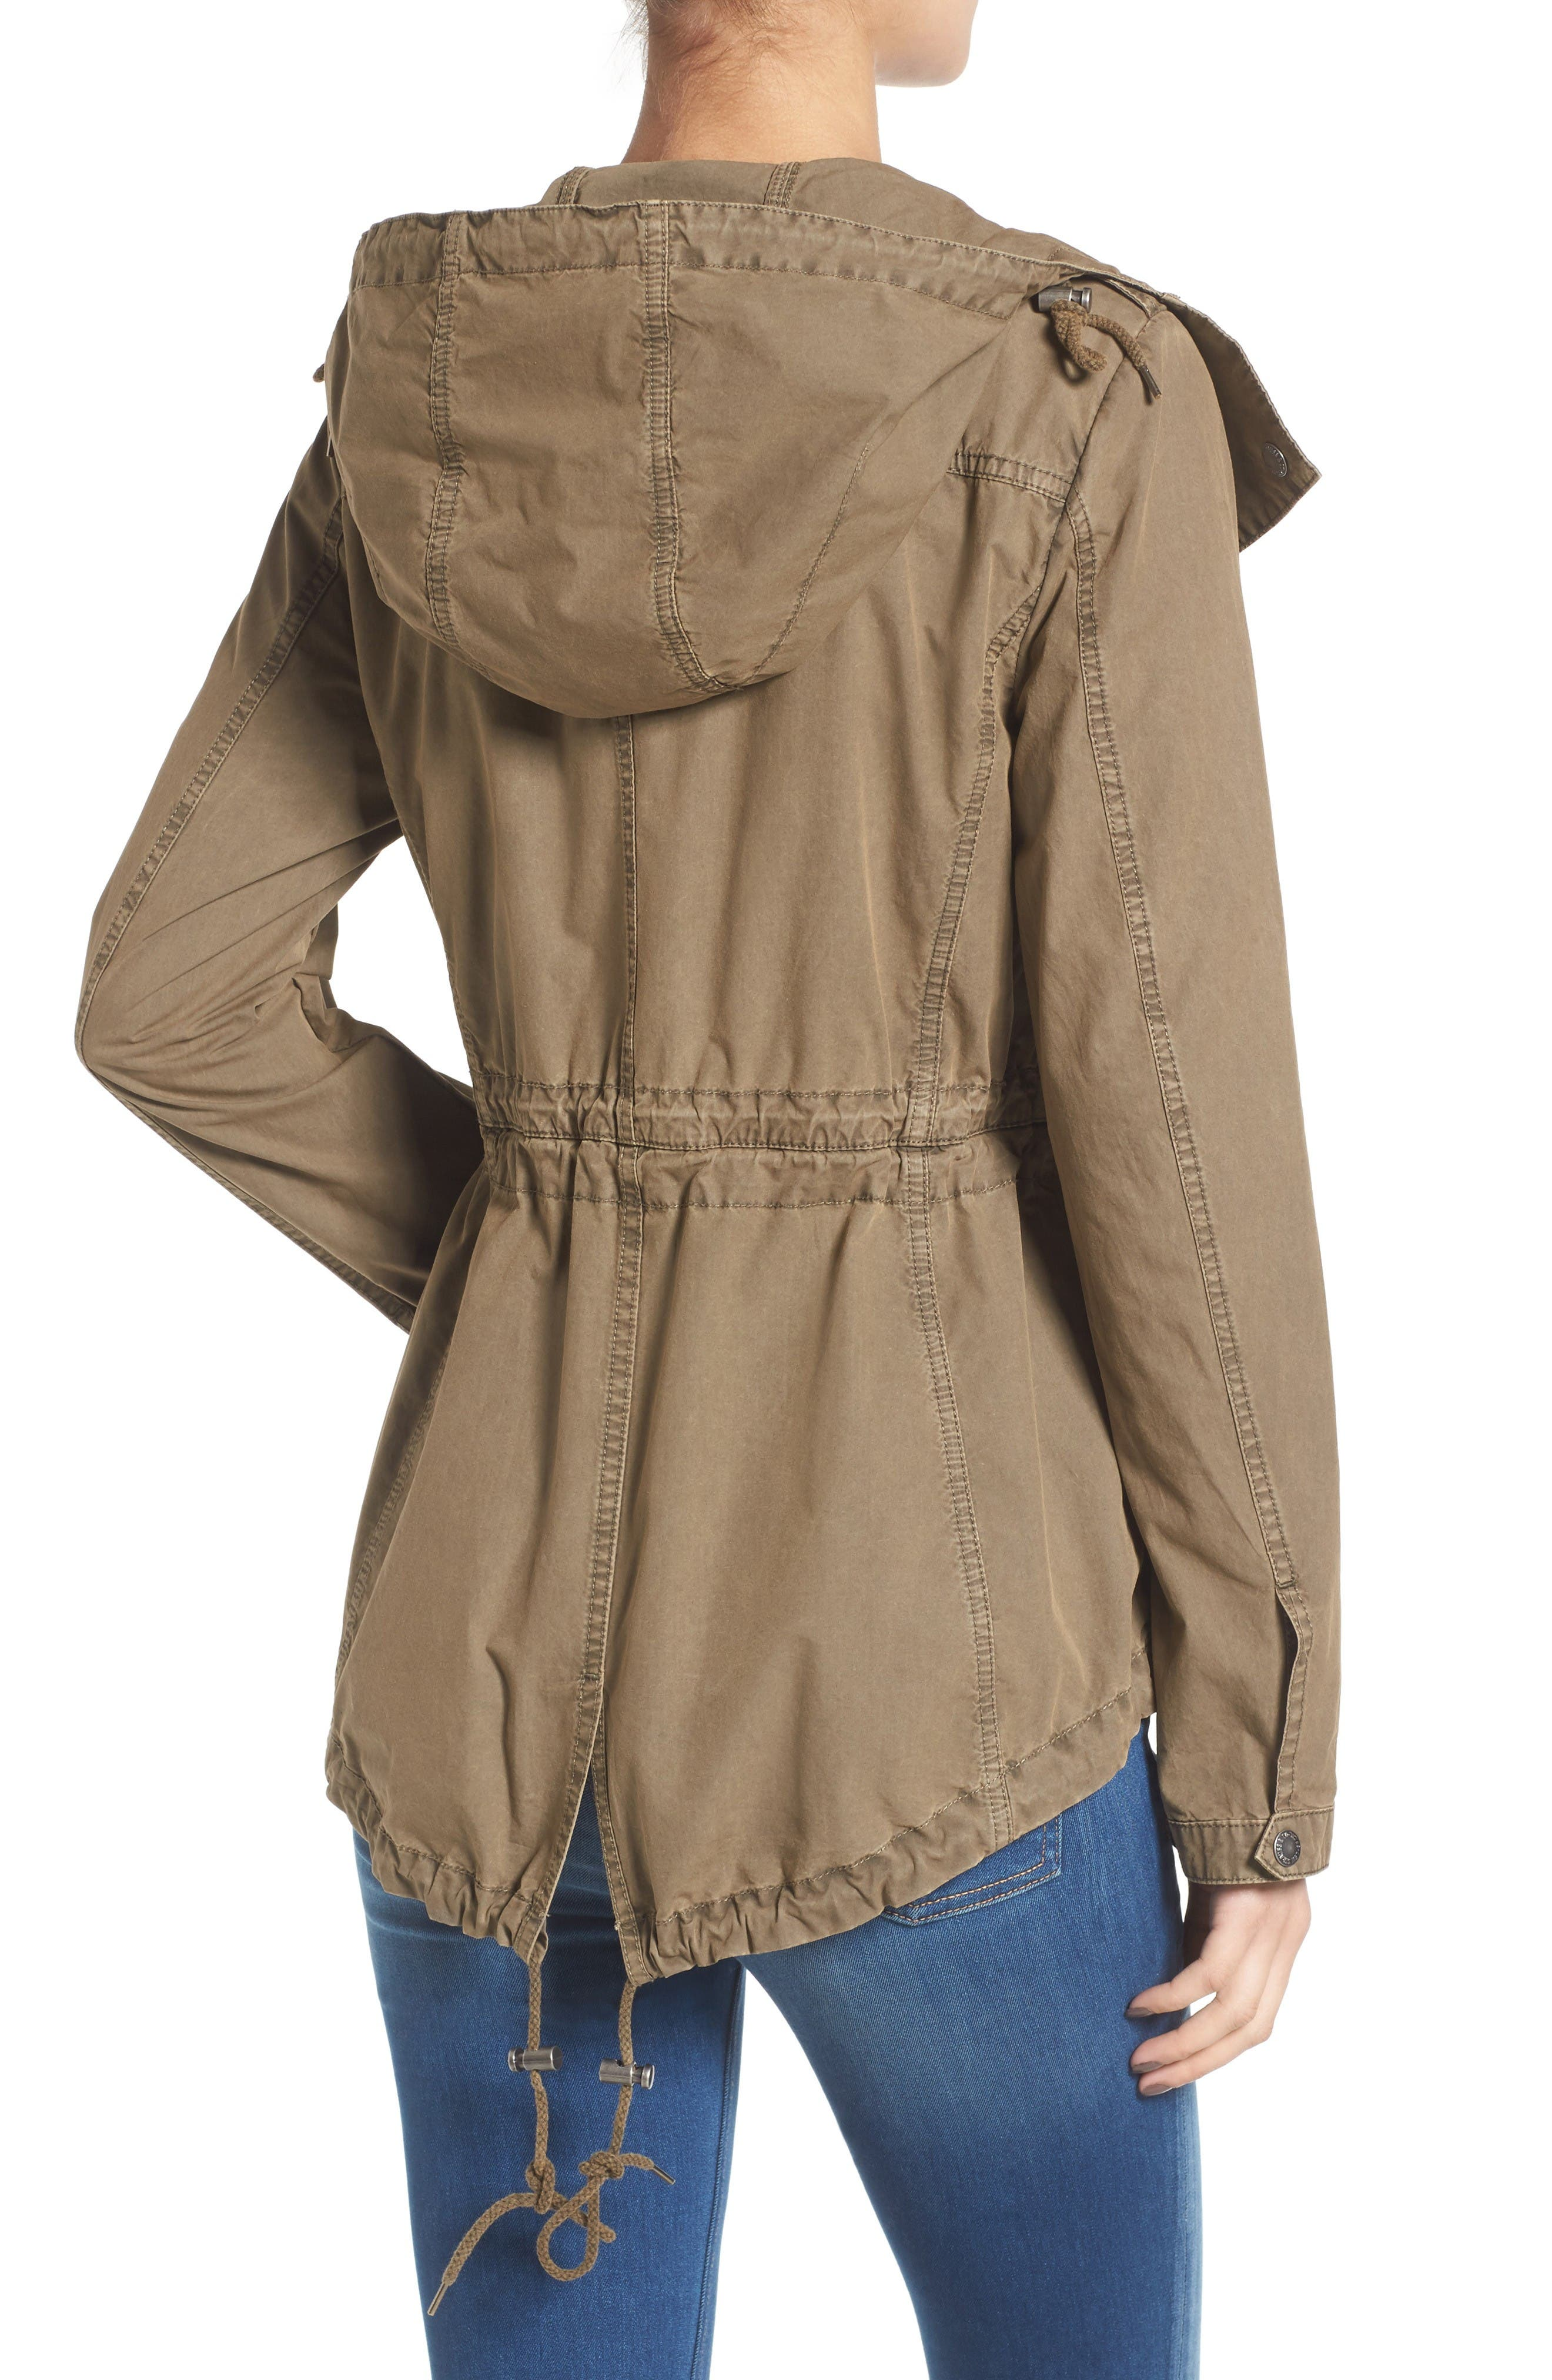 Parachute Cotton Hooded Utility Jacket,                             Alternate thumbnail 3, color,                             Khaki